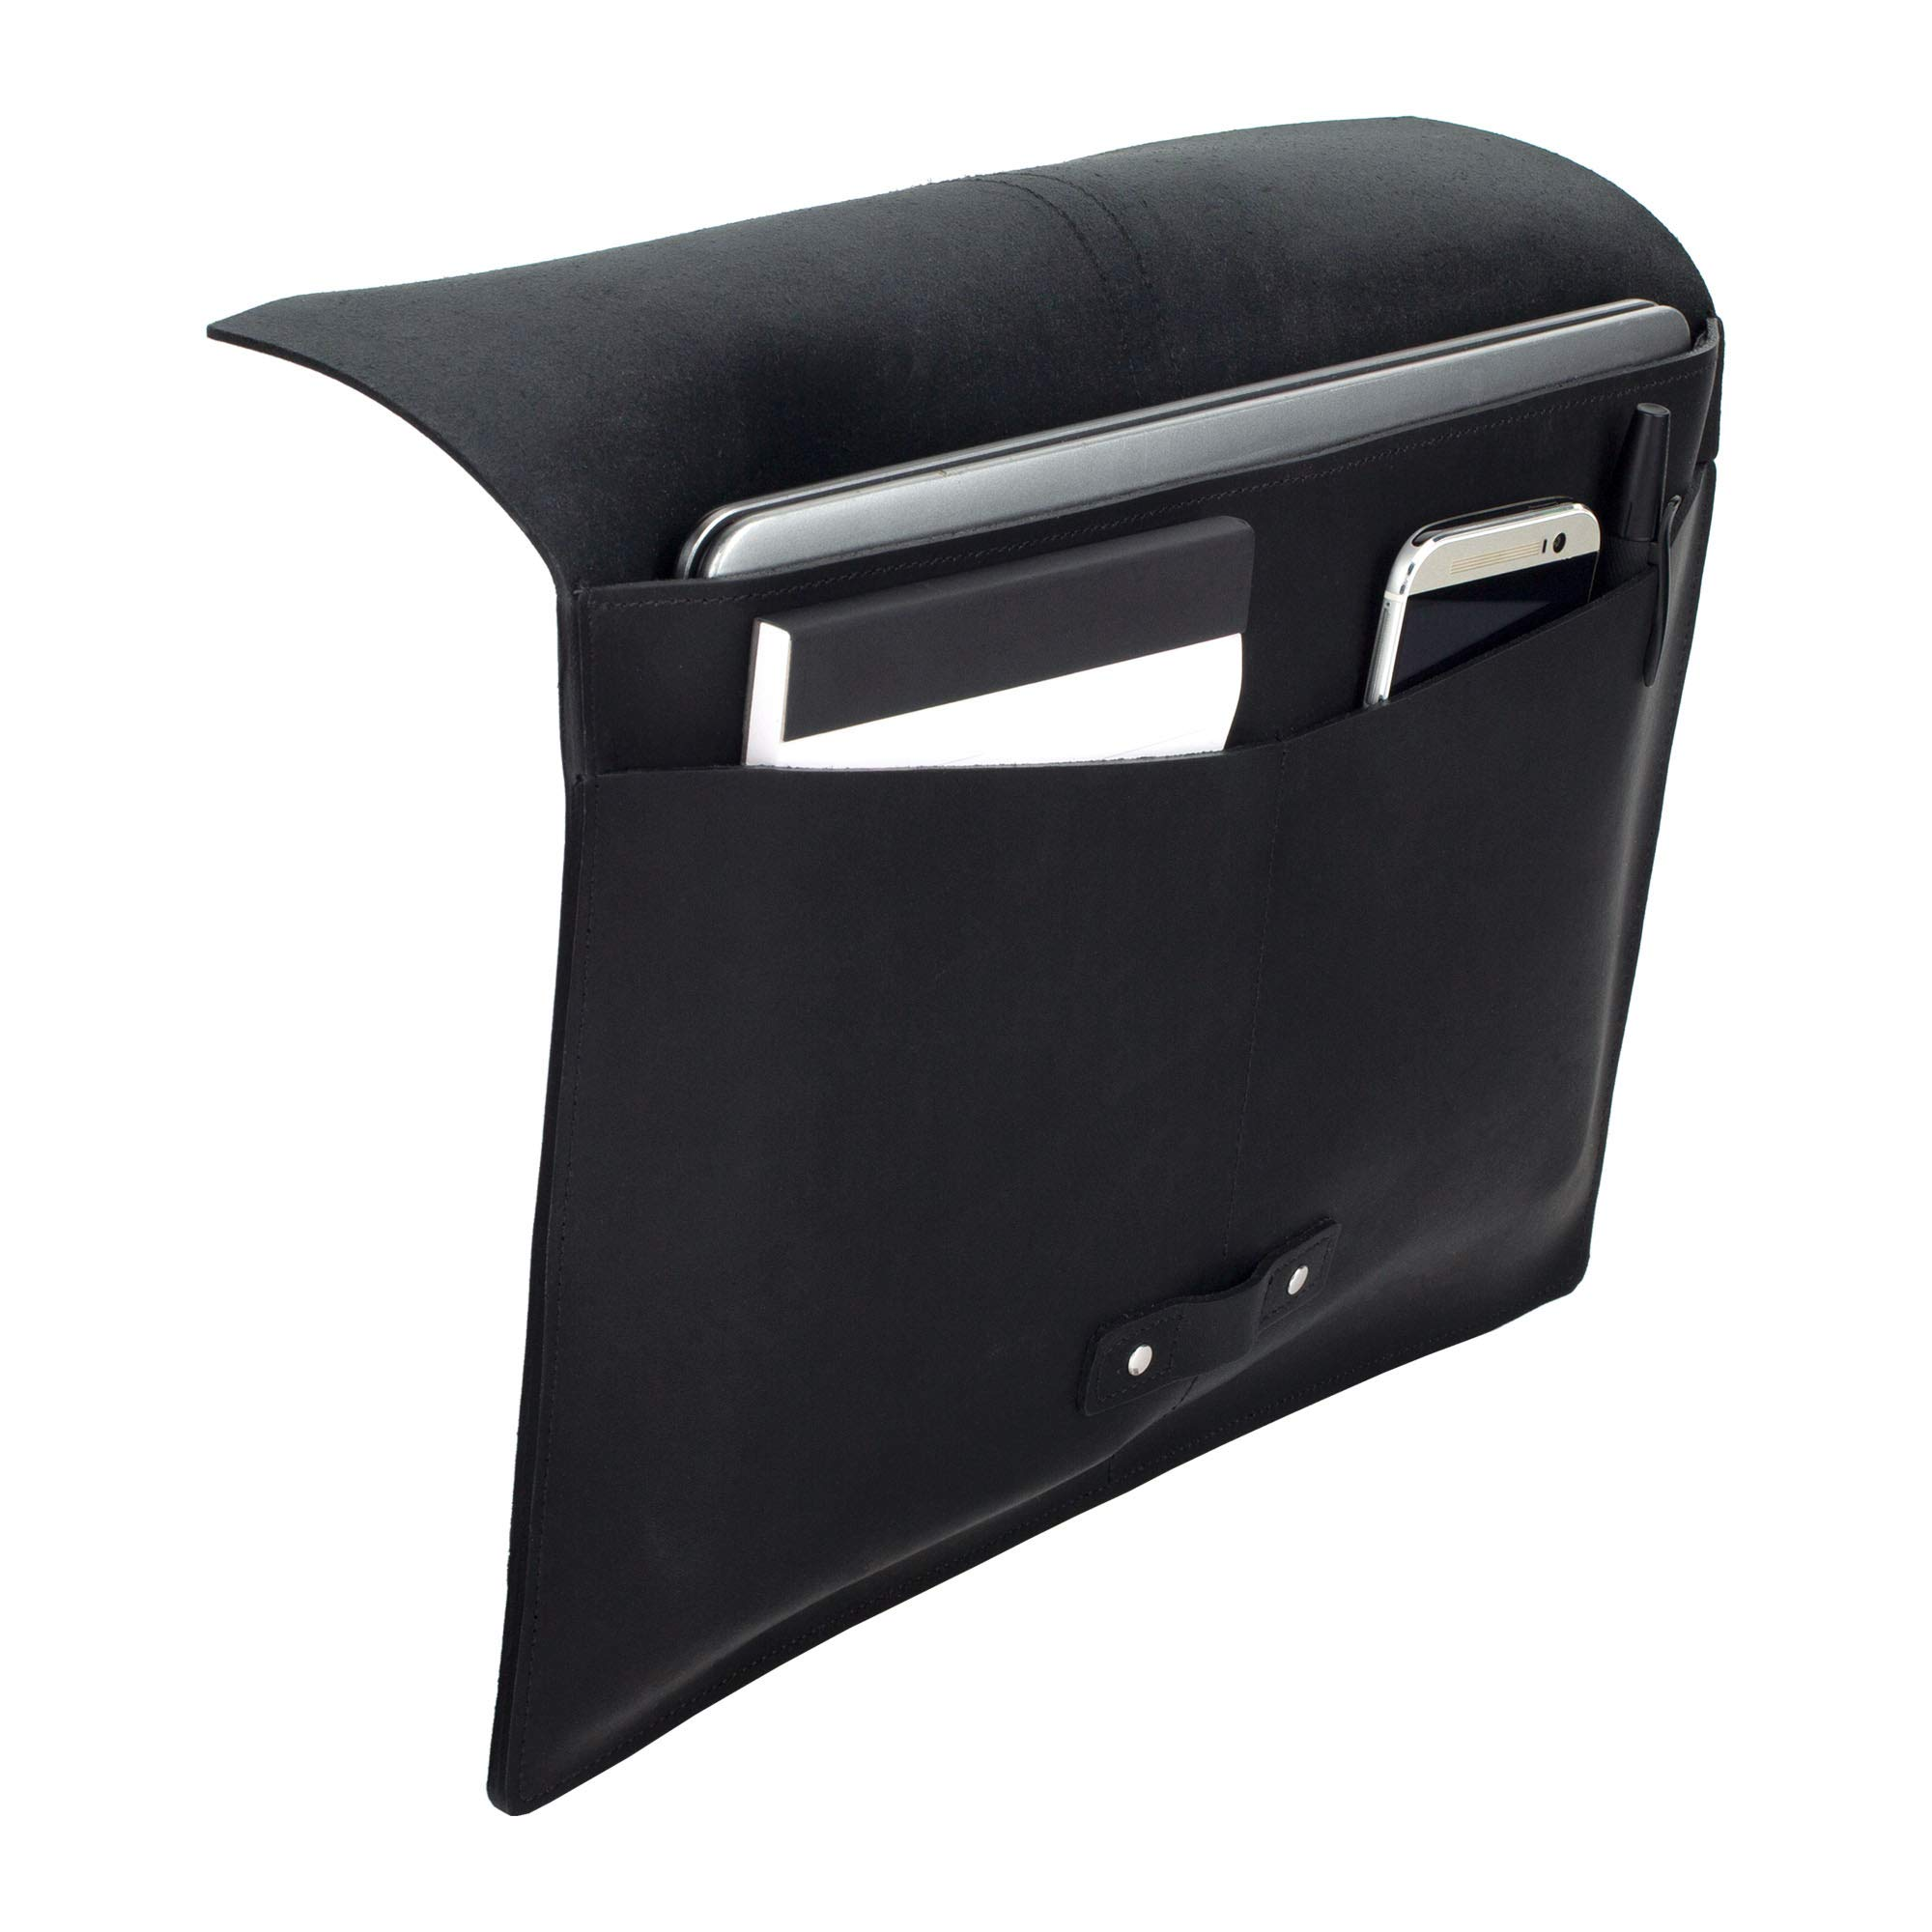 SLATE COLLECTION Belltown Small Laptop Sleeve, Full-Grain Leather (Midnight, fits 13'' Laptop) by SLATE COLLECTION (Image #8)